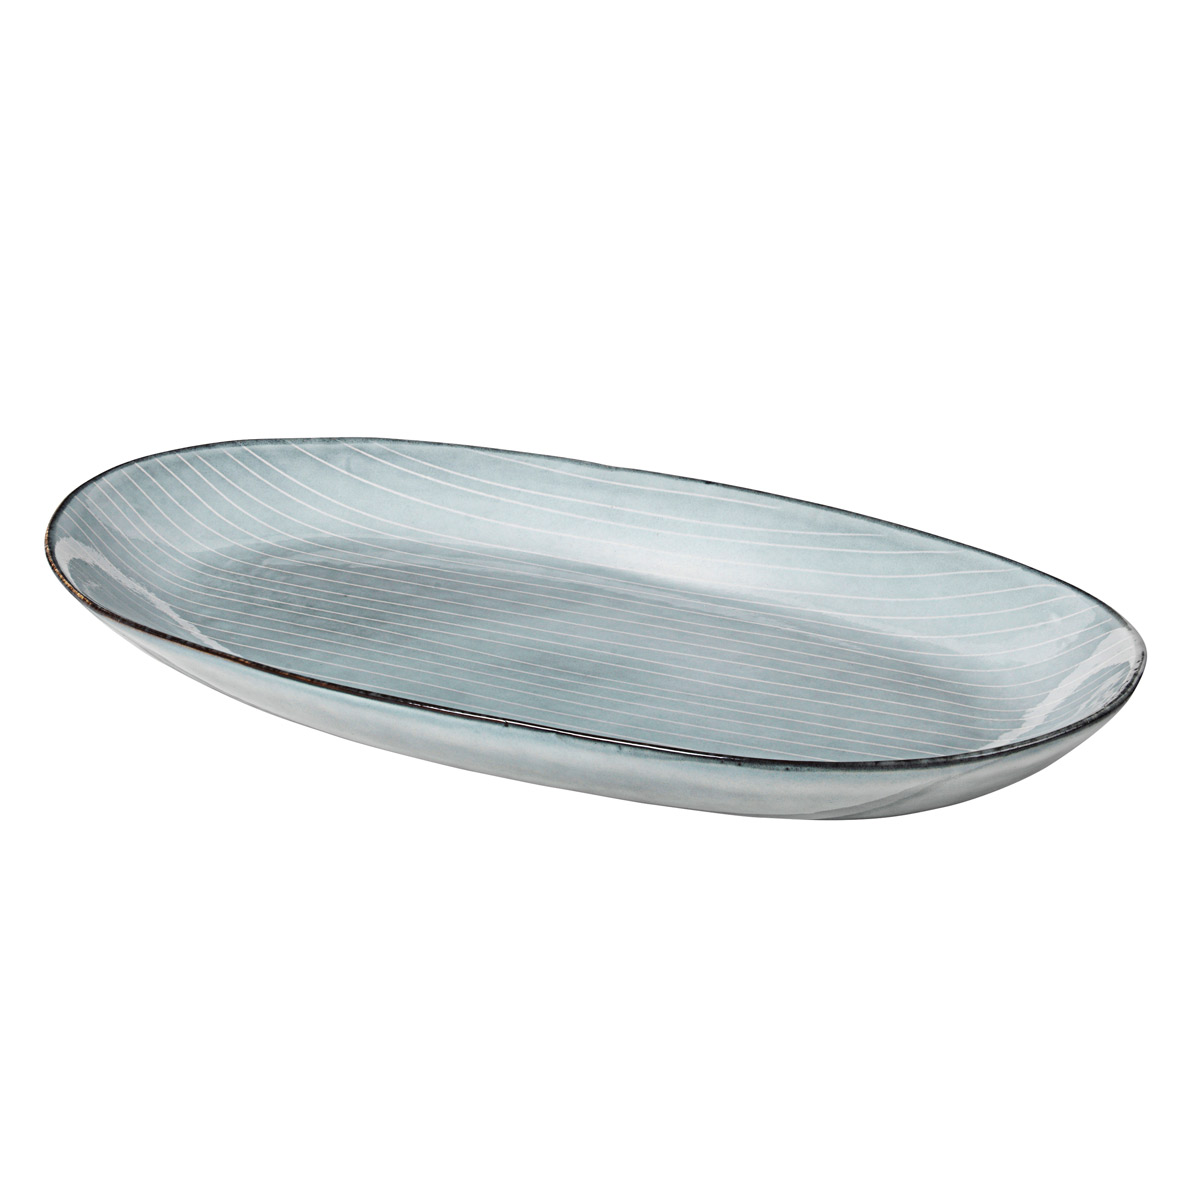 14533172-Nordic-Sea-Oval-Large-Serving-Plate